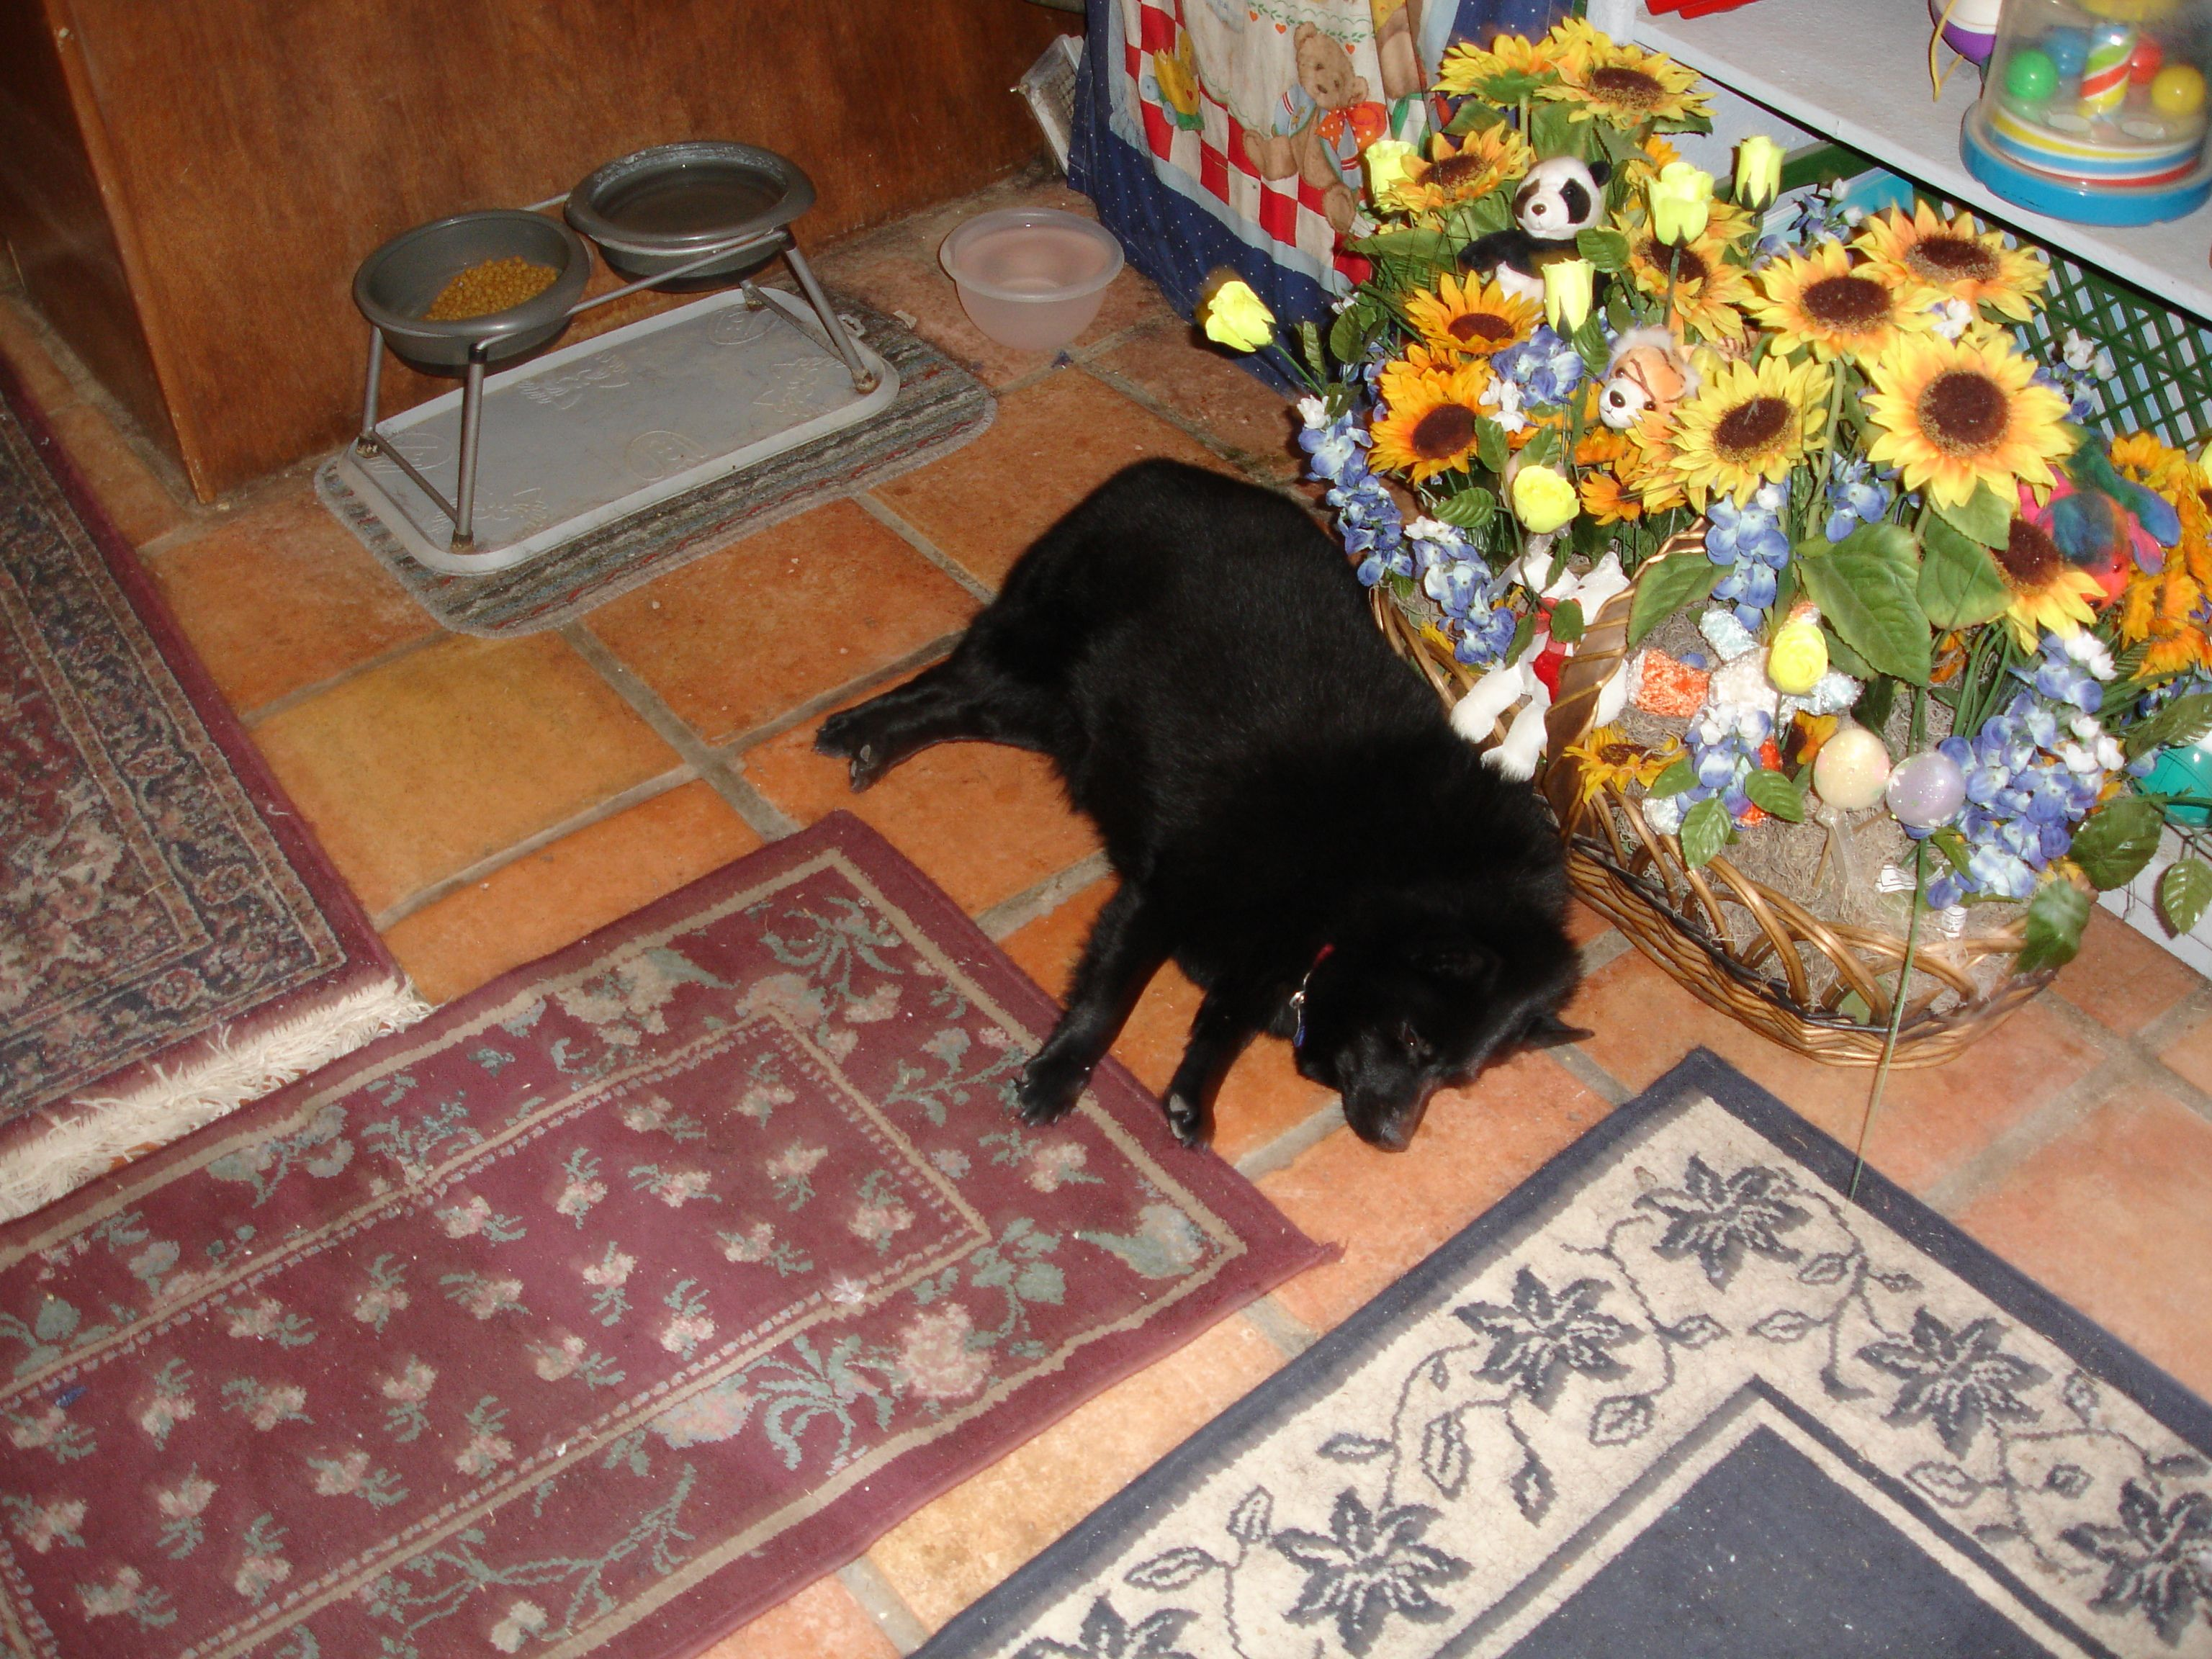 My baby laying by the flowers after my son died baby was